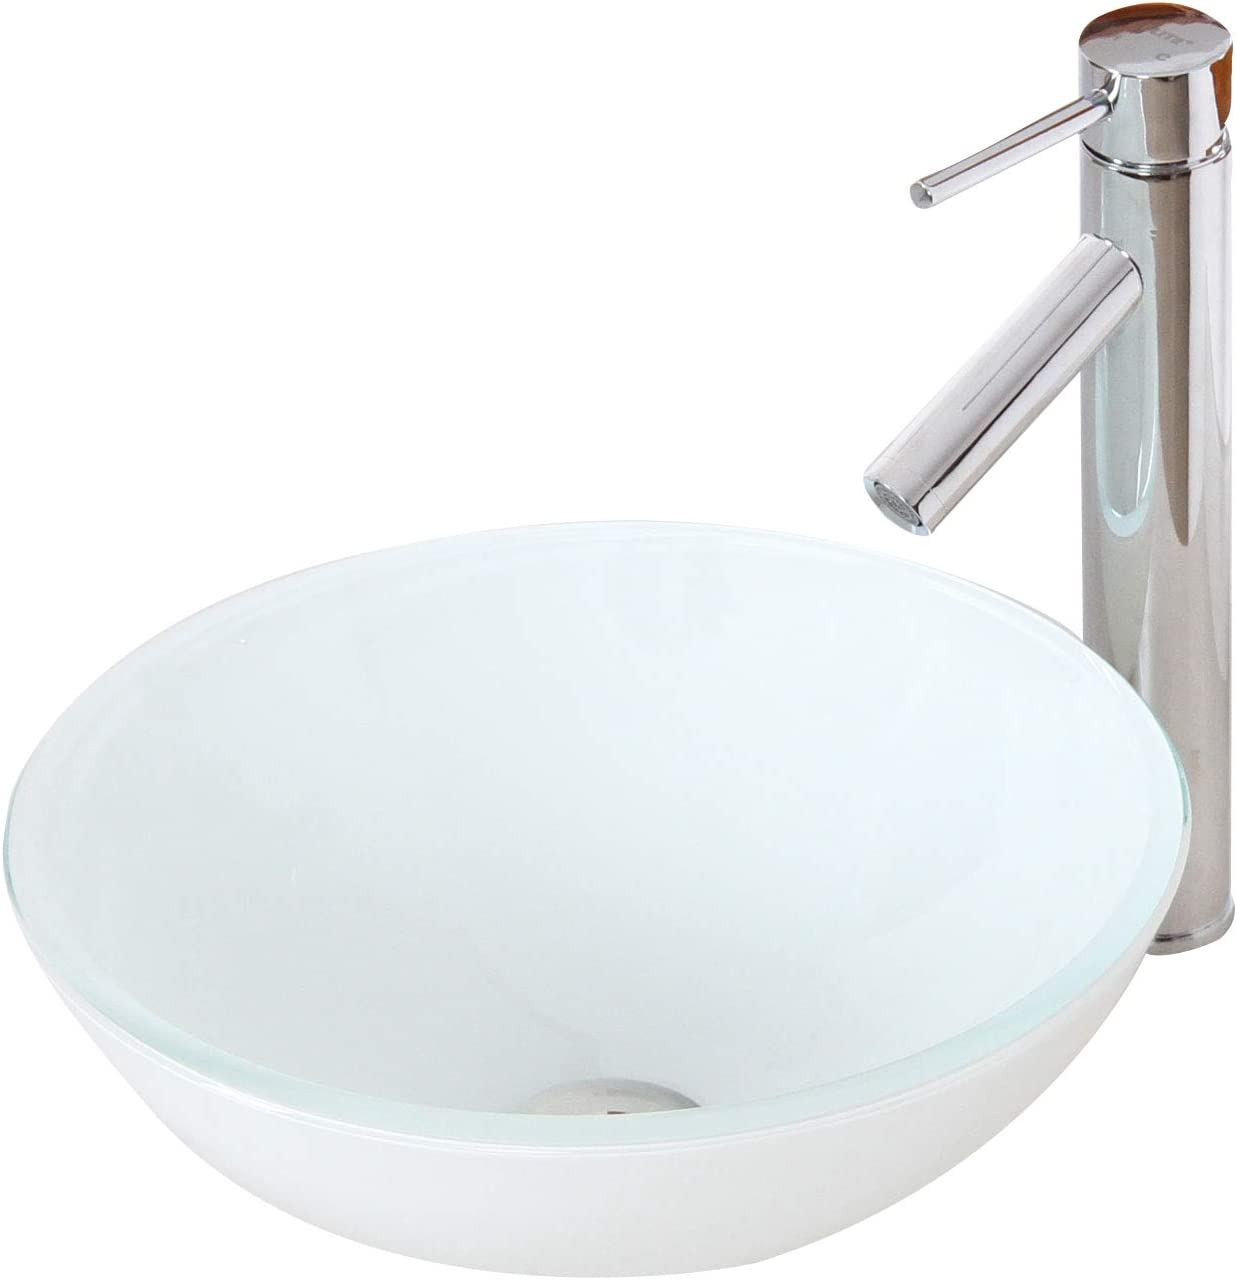 ELITE Tempered Bathroom White Pattern Glass Vessel Sink Chrome Faucet Combo